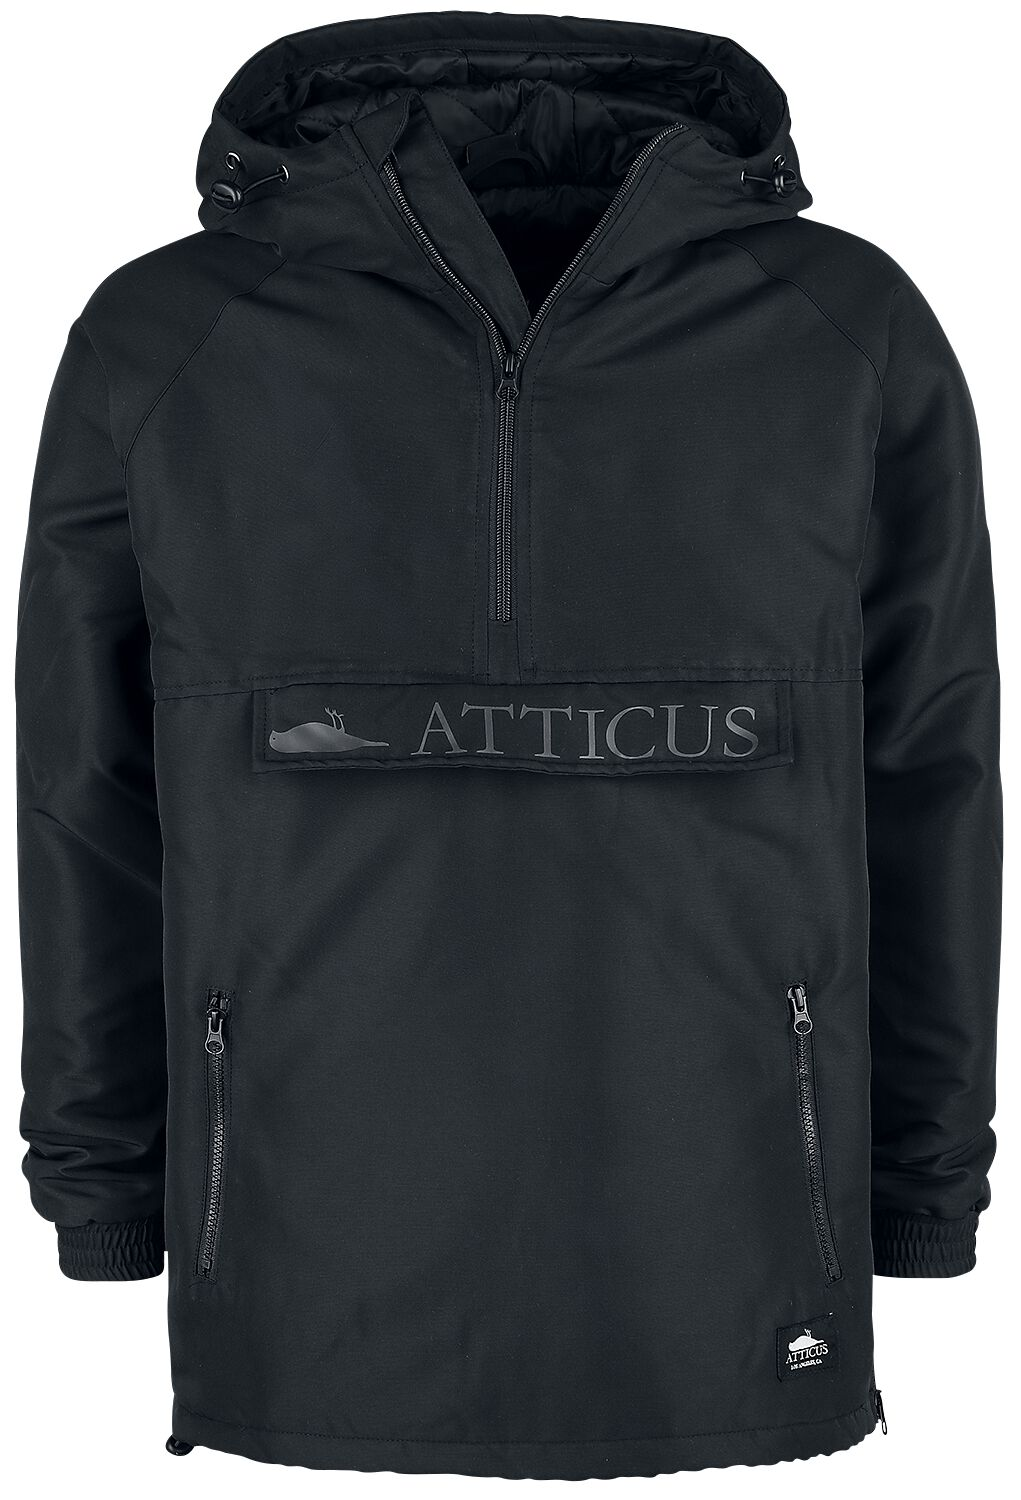 Image of Atticus Francis Hooded Anorak Jacket Winterjacke schwarz